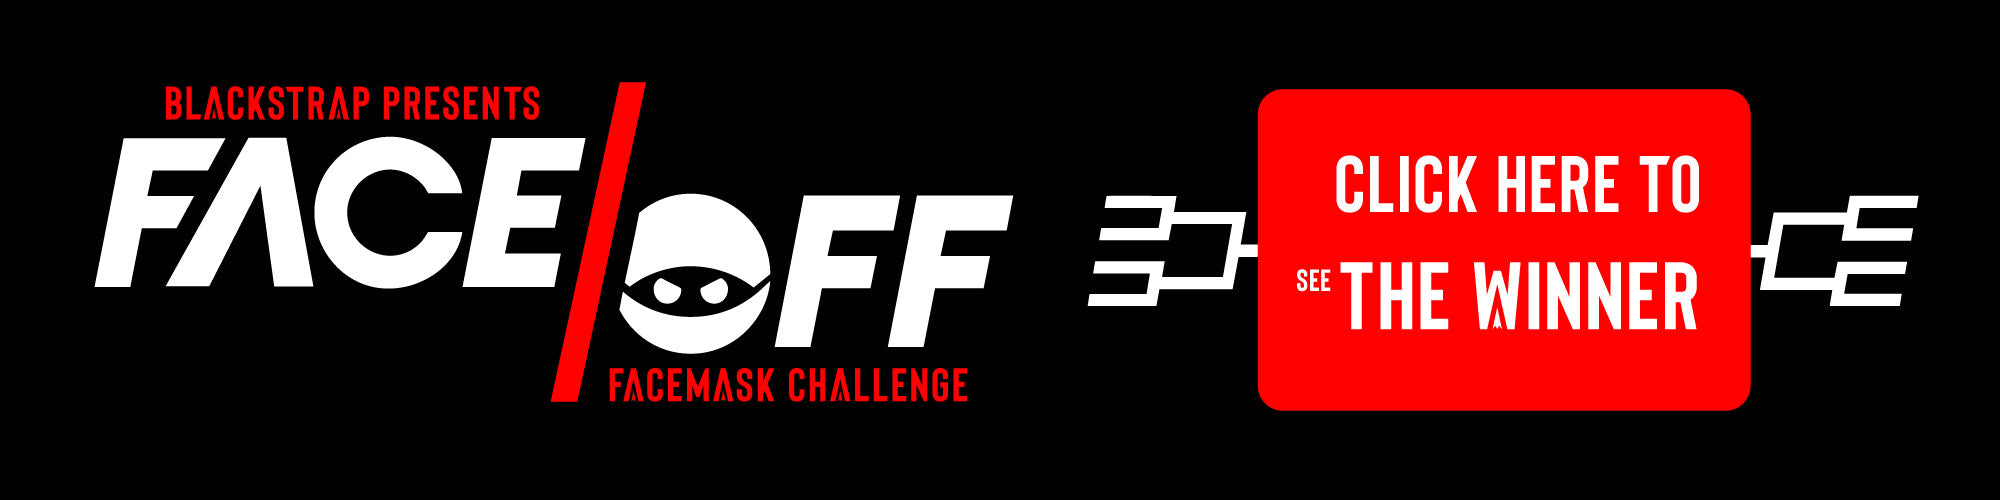 BlackStrap Face Off Challenge